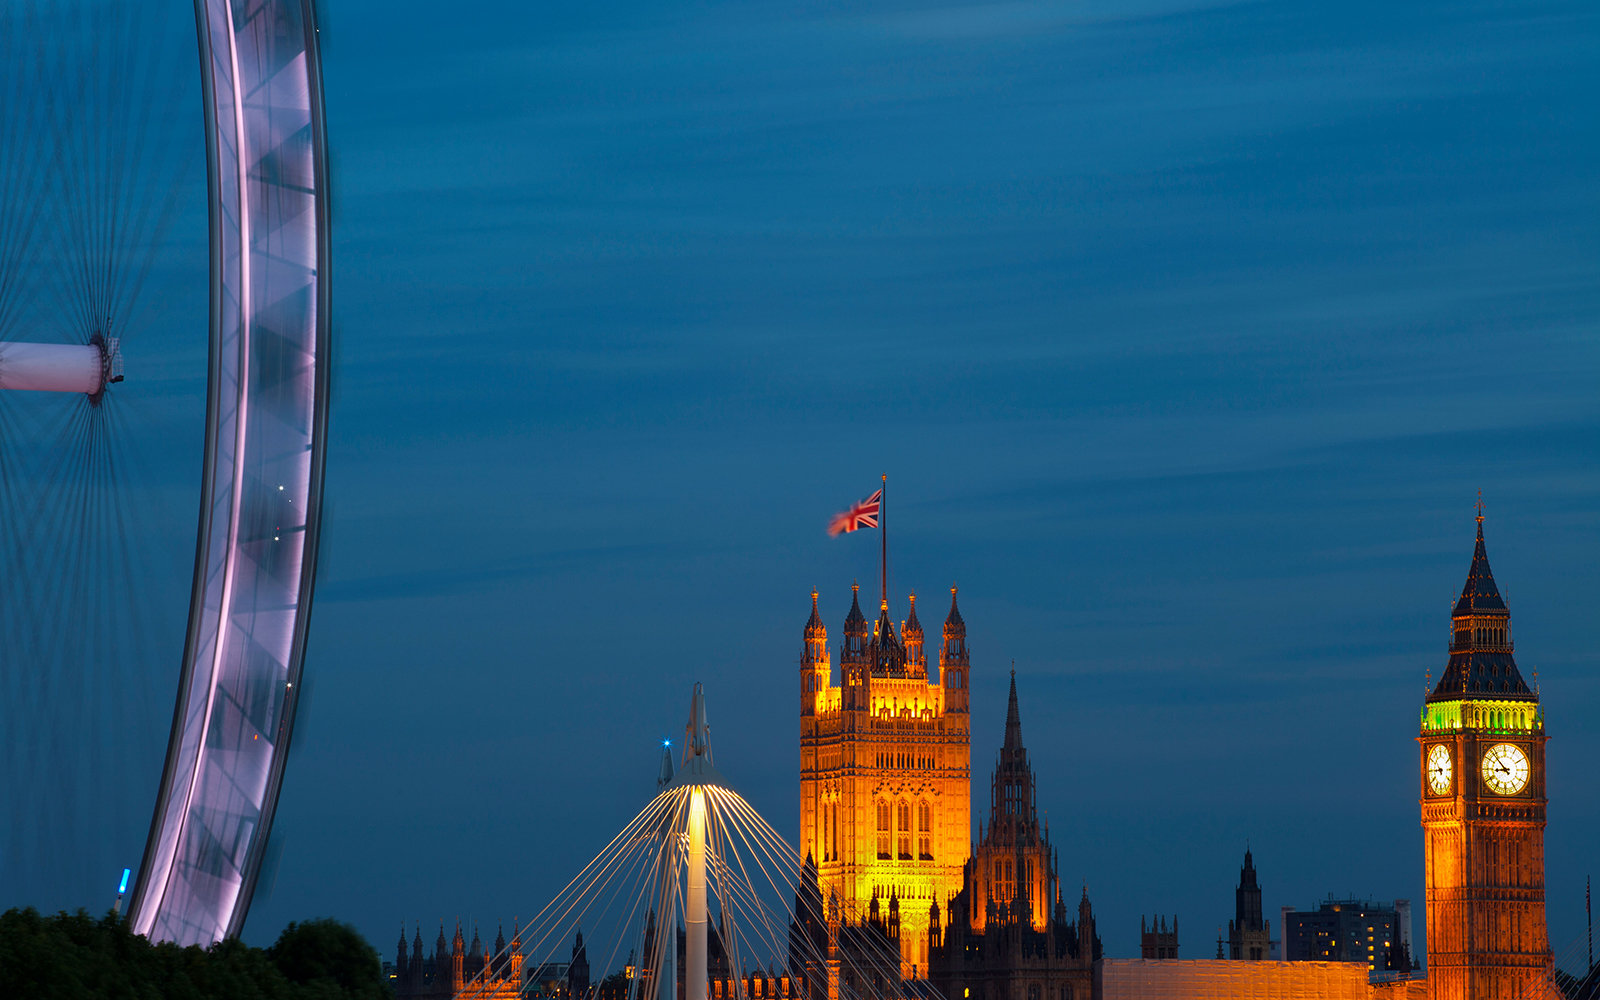 BP68HC Millennium wheel and Houses of Parliament at dusk, London, UK.